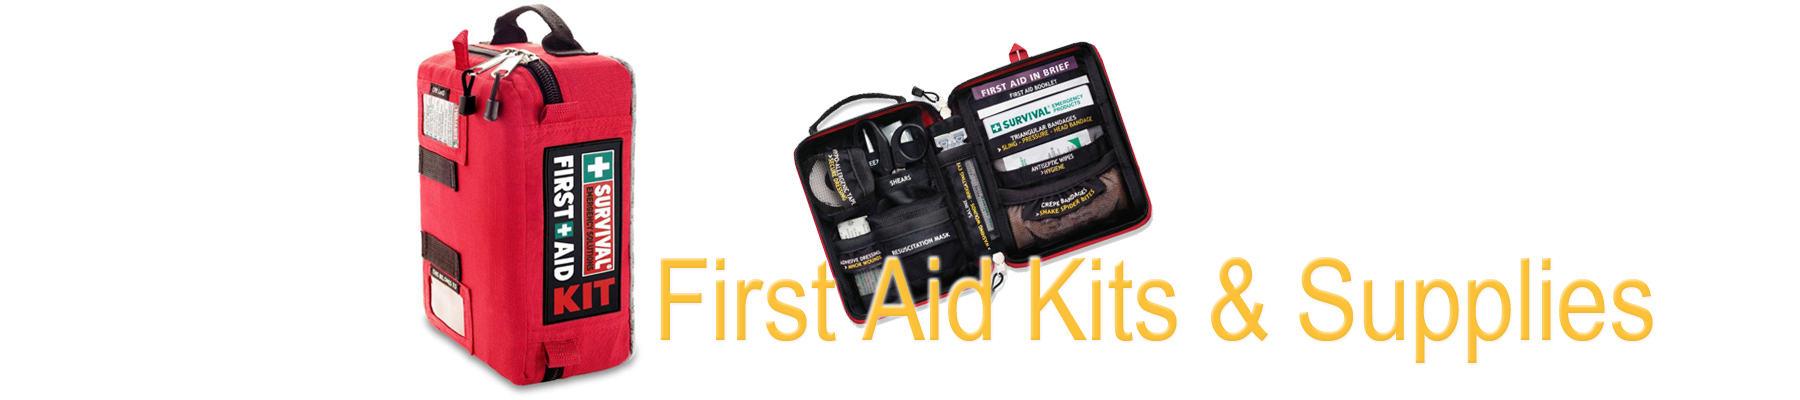 Buy First Aid Kits & Supplies